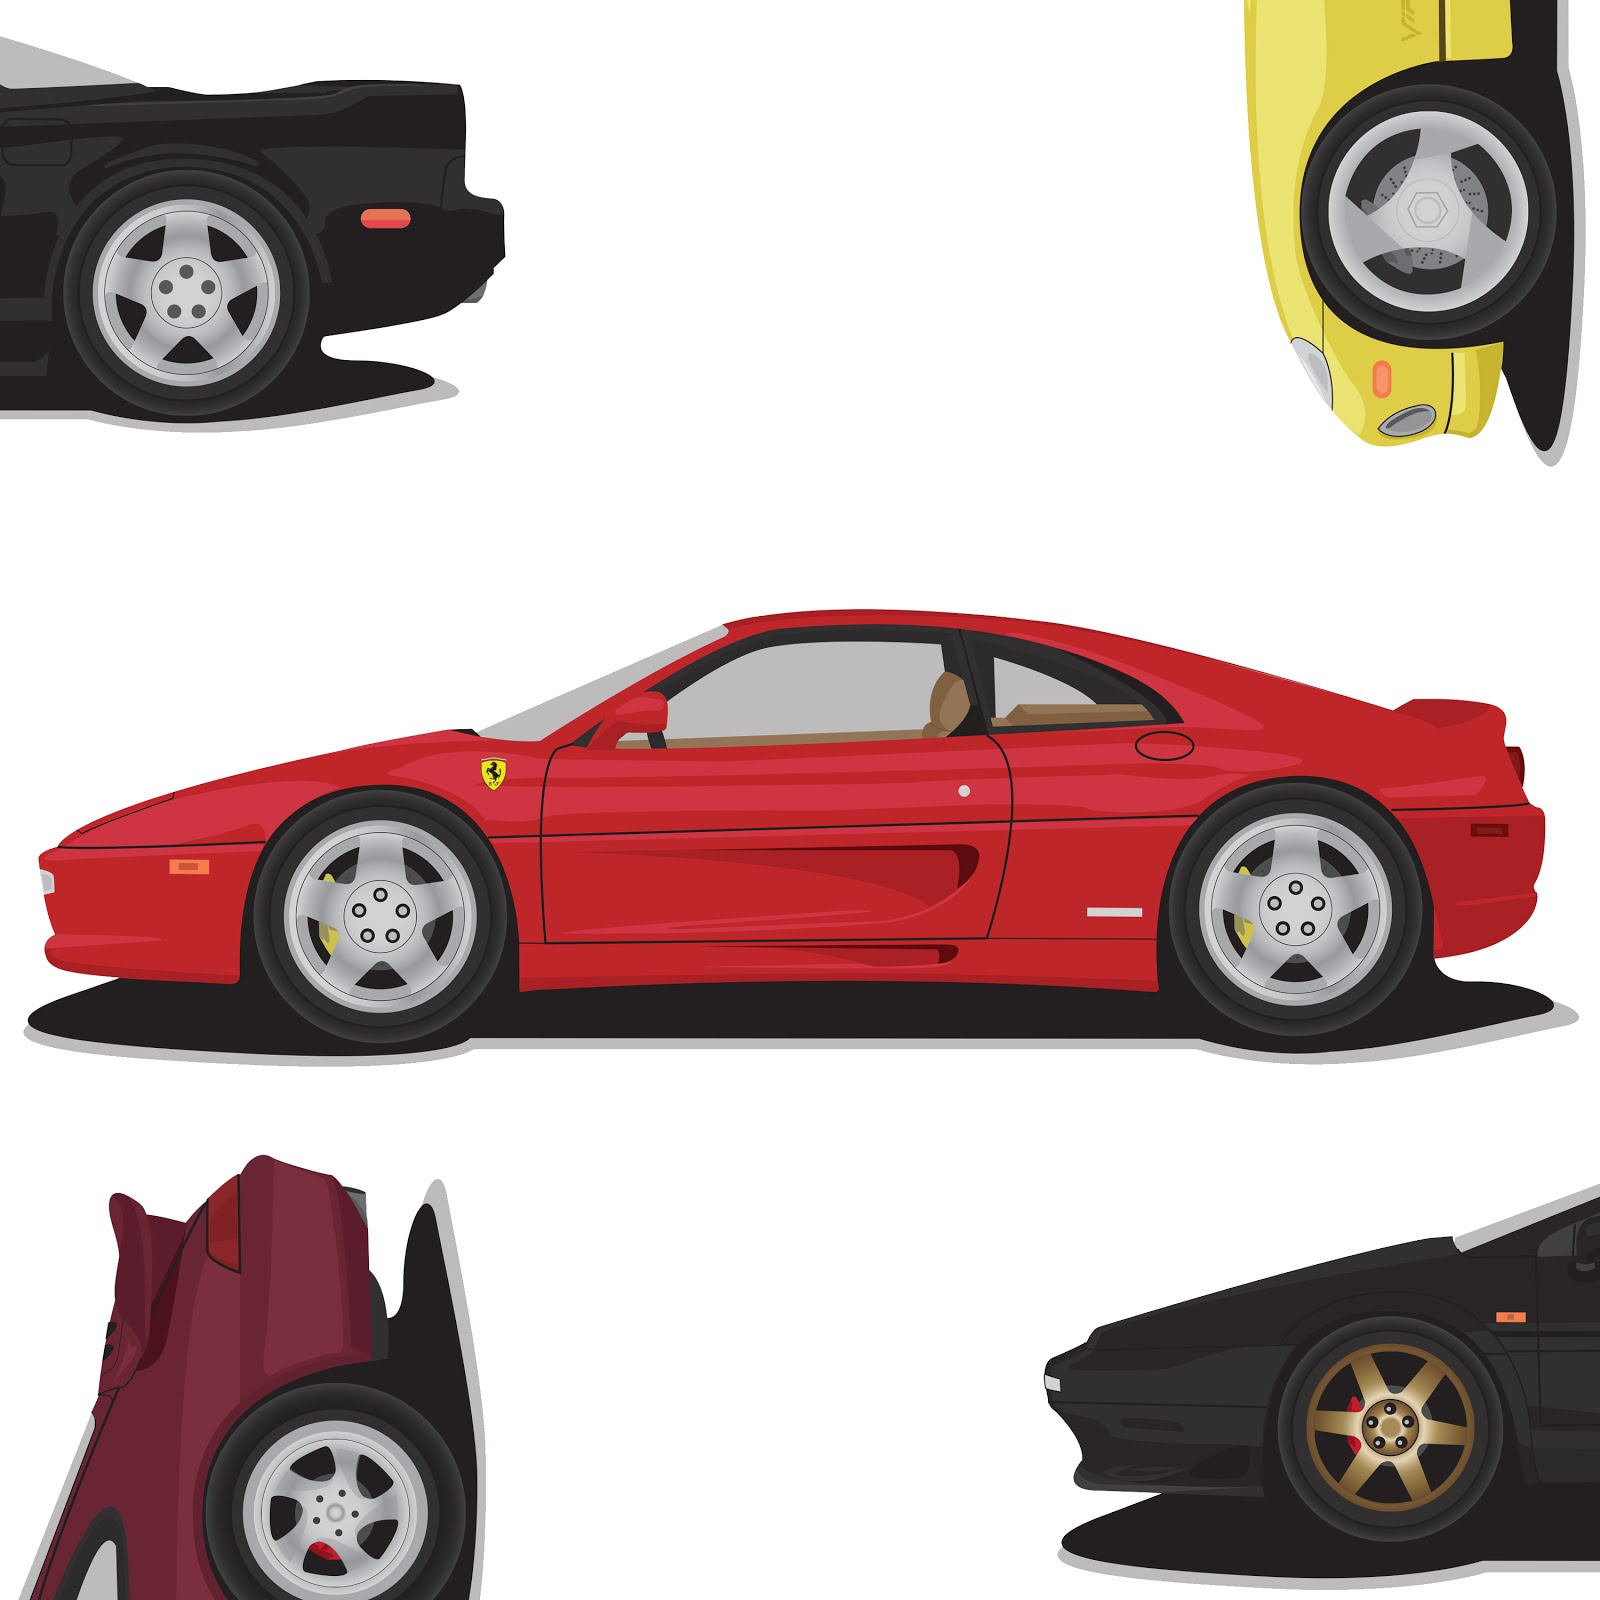 Illustration: Super cars of 1995